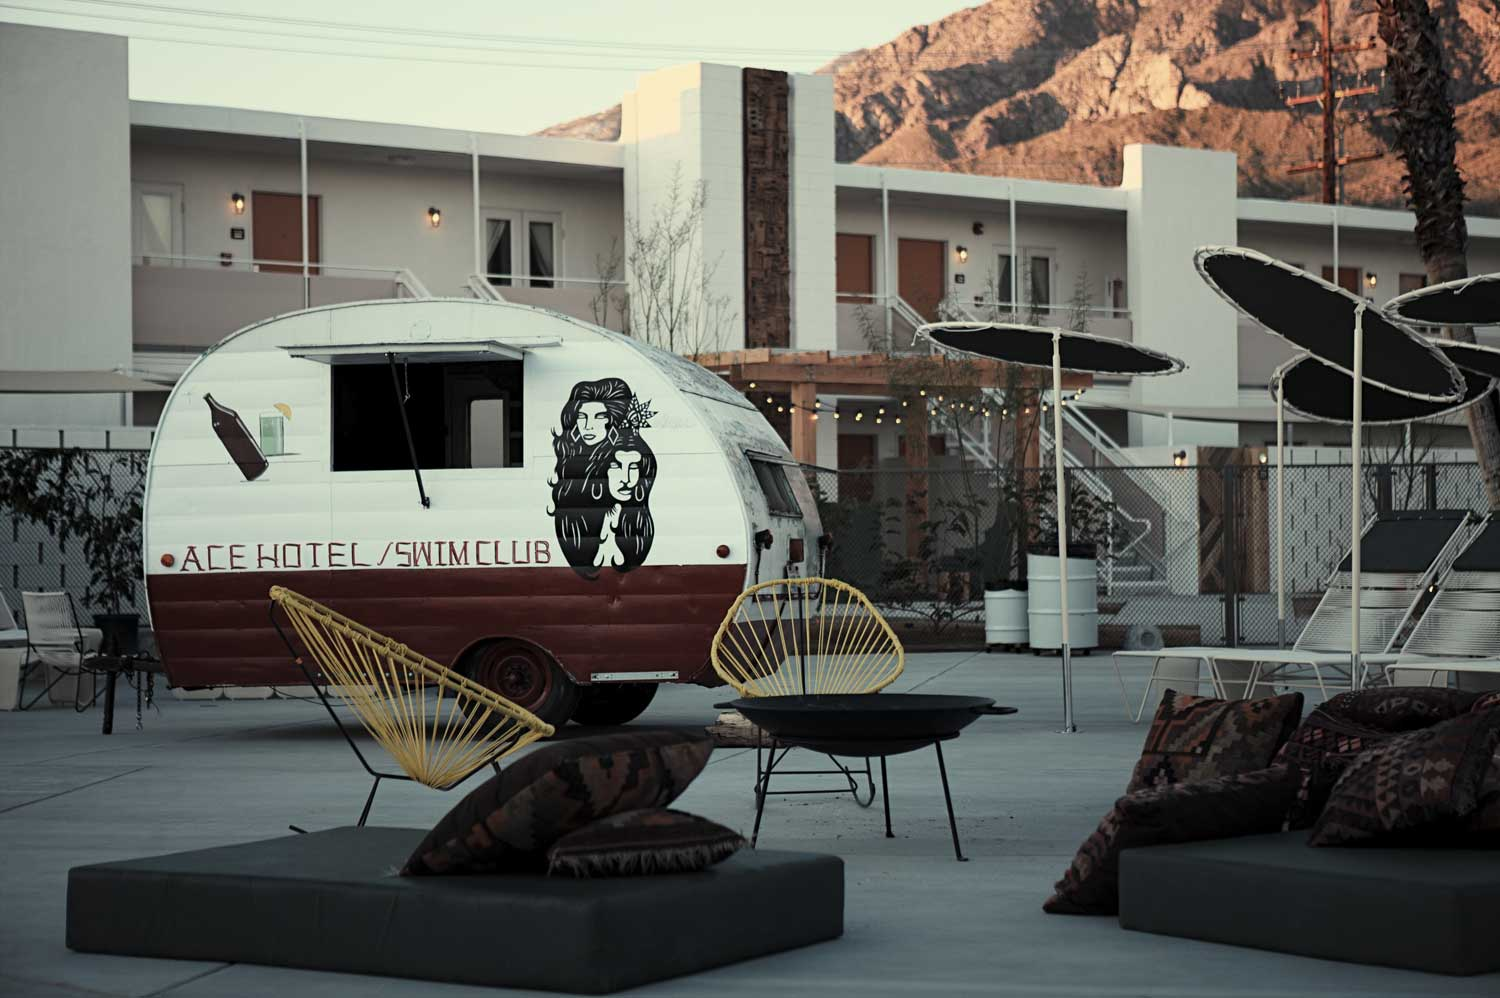 Palm Springs Ace Hotel | Yellowtrace